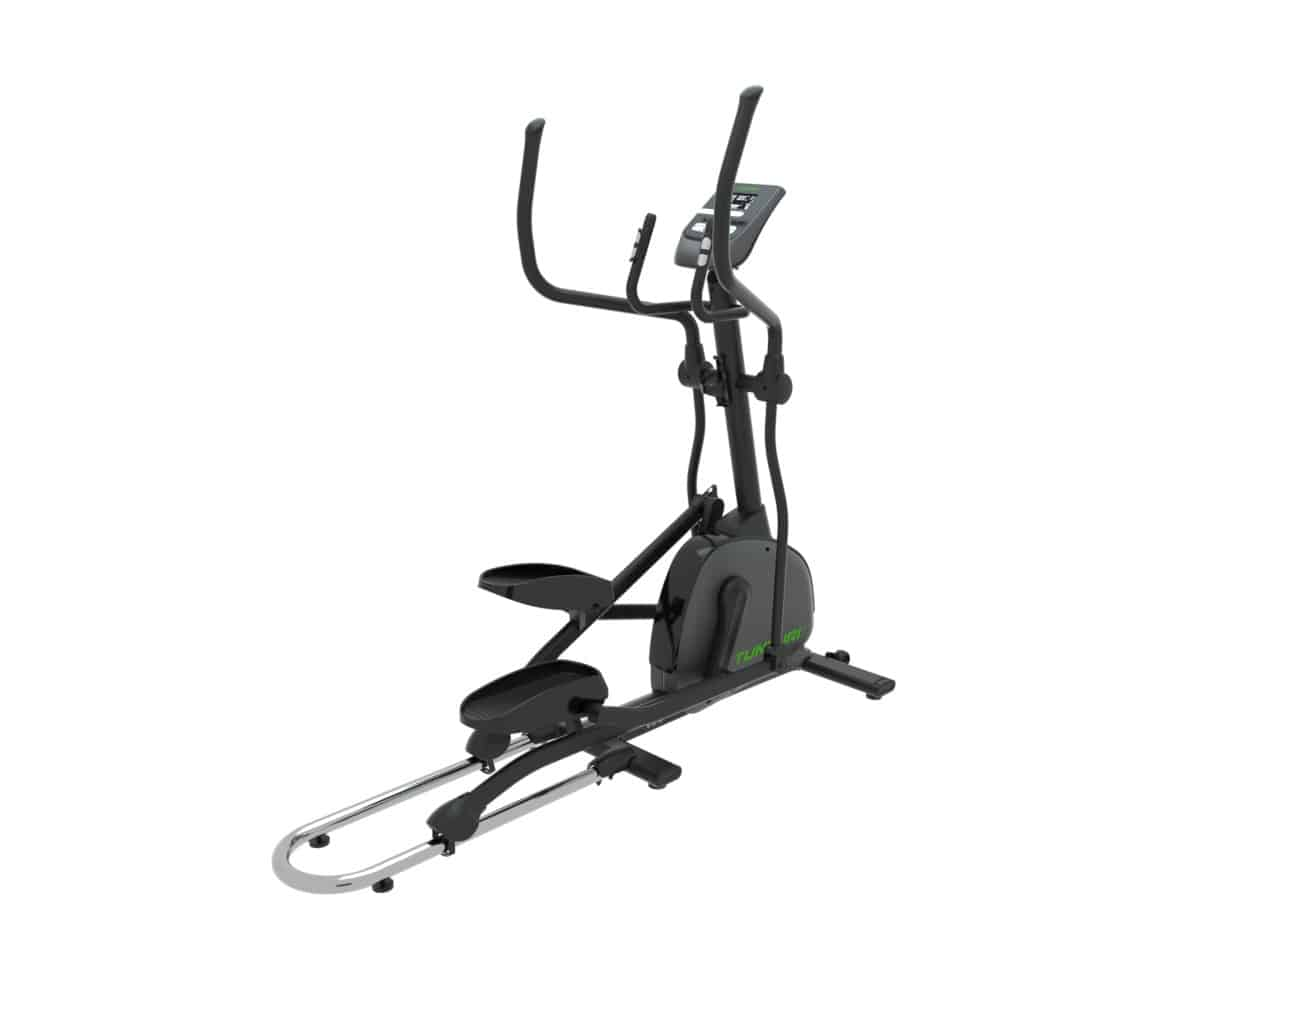 Performance Crosstrainer C55 test